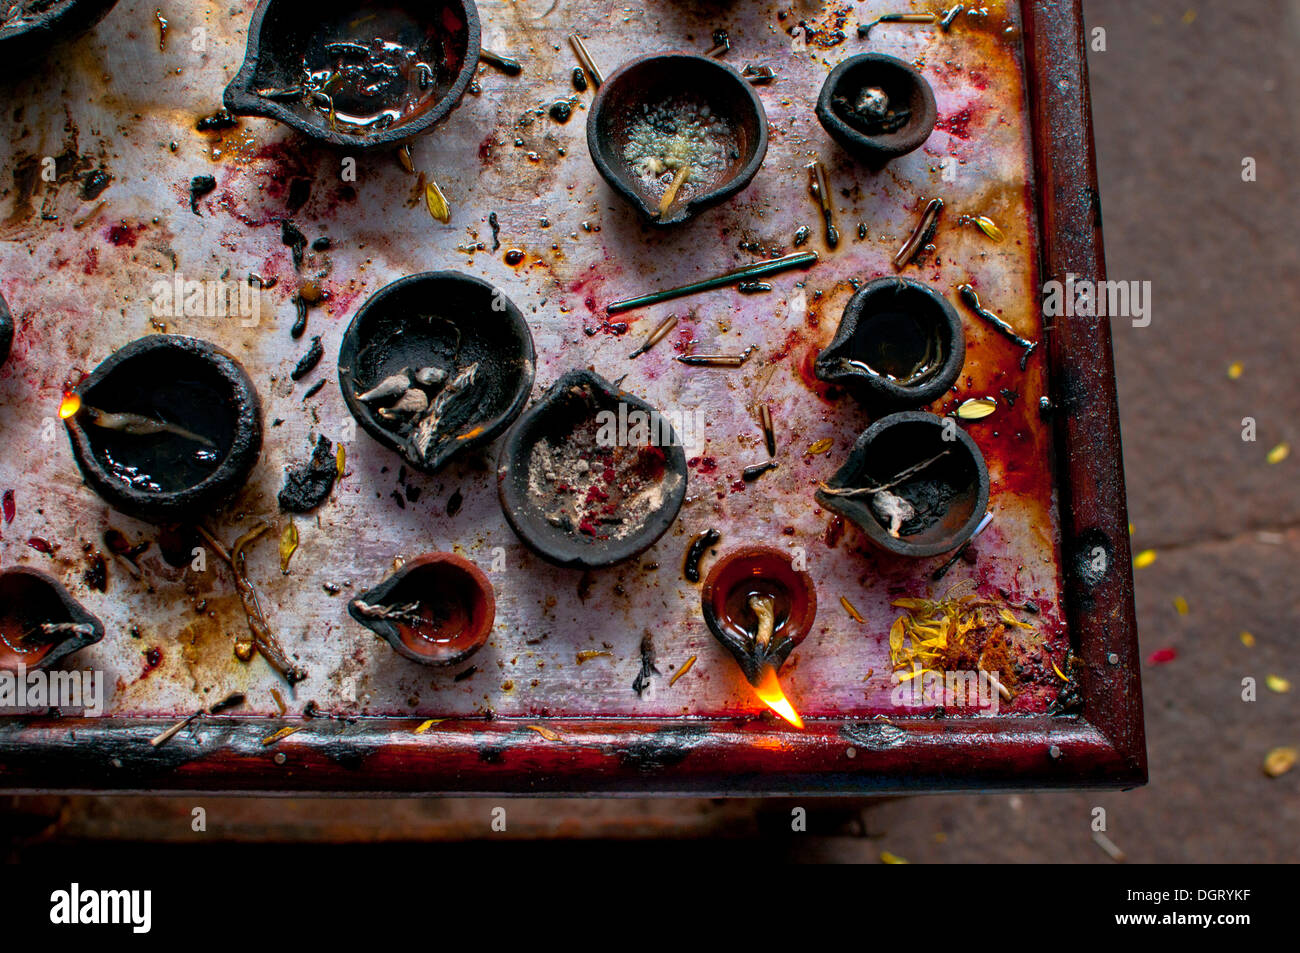 Oil lamps in an Indian temple Stock Photo